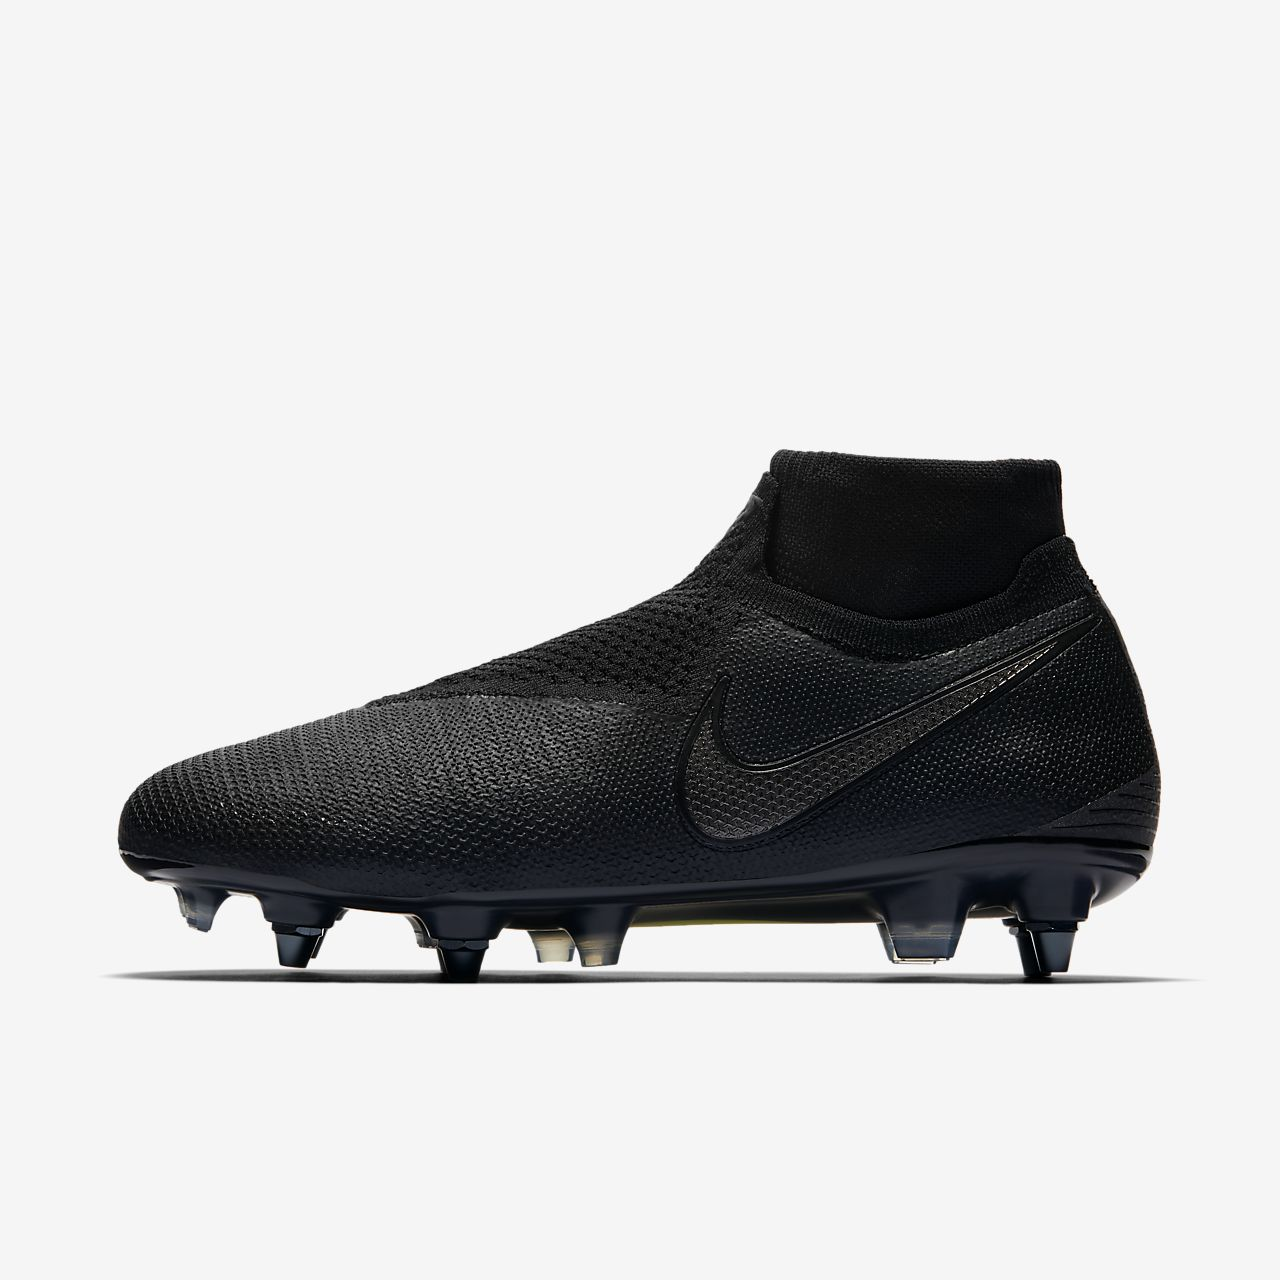 Dynamic Nike Vision Anti Clog Sg Elite Da Phantom Scarpa Fit Calcio nUagFEY